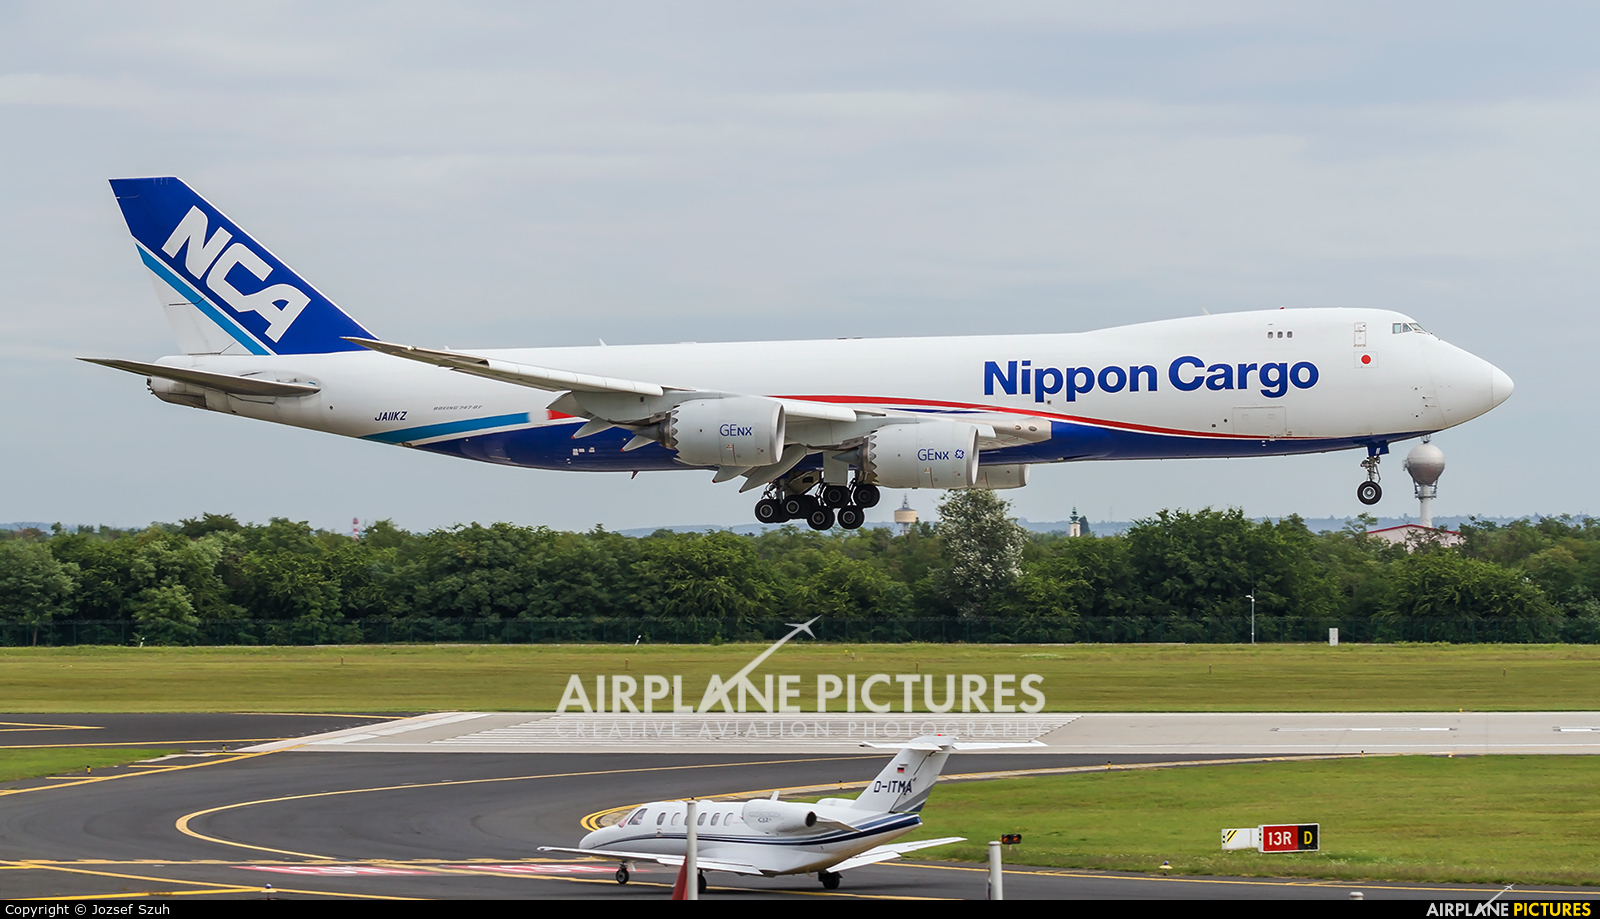 Nippon Cargo Airlines JA11KZ aircraft at Budapest Ferenc Liszt International Airport